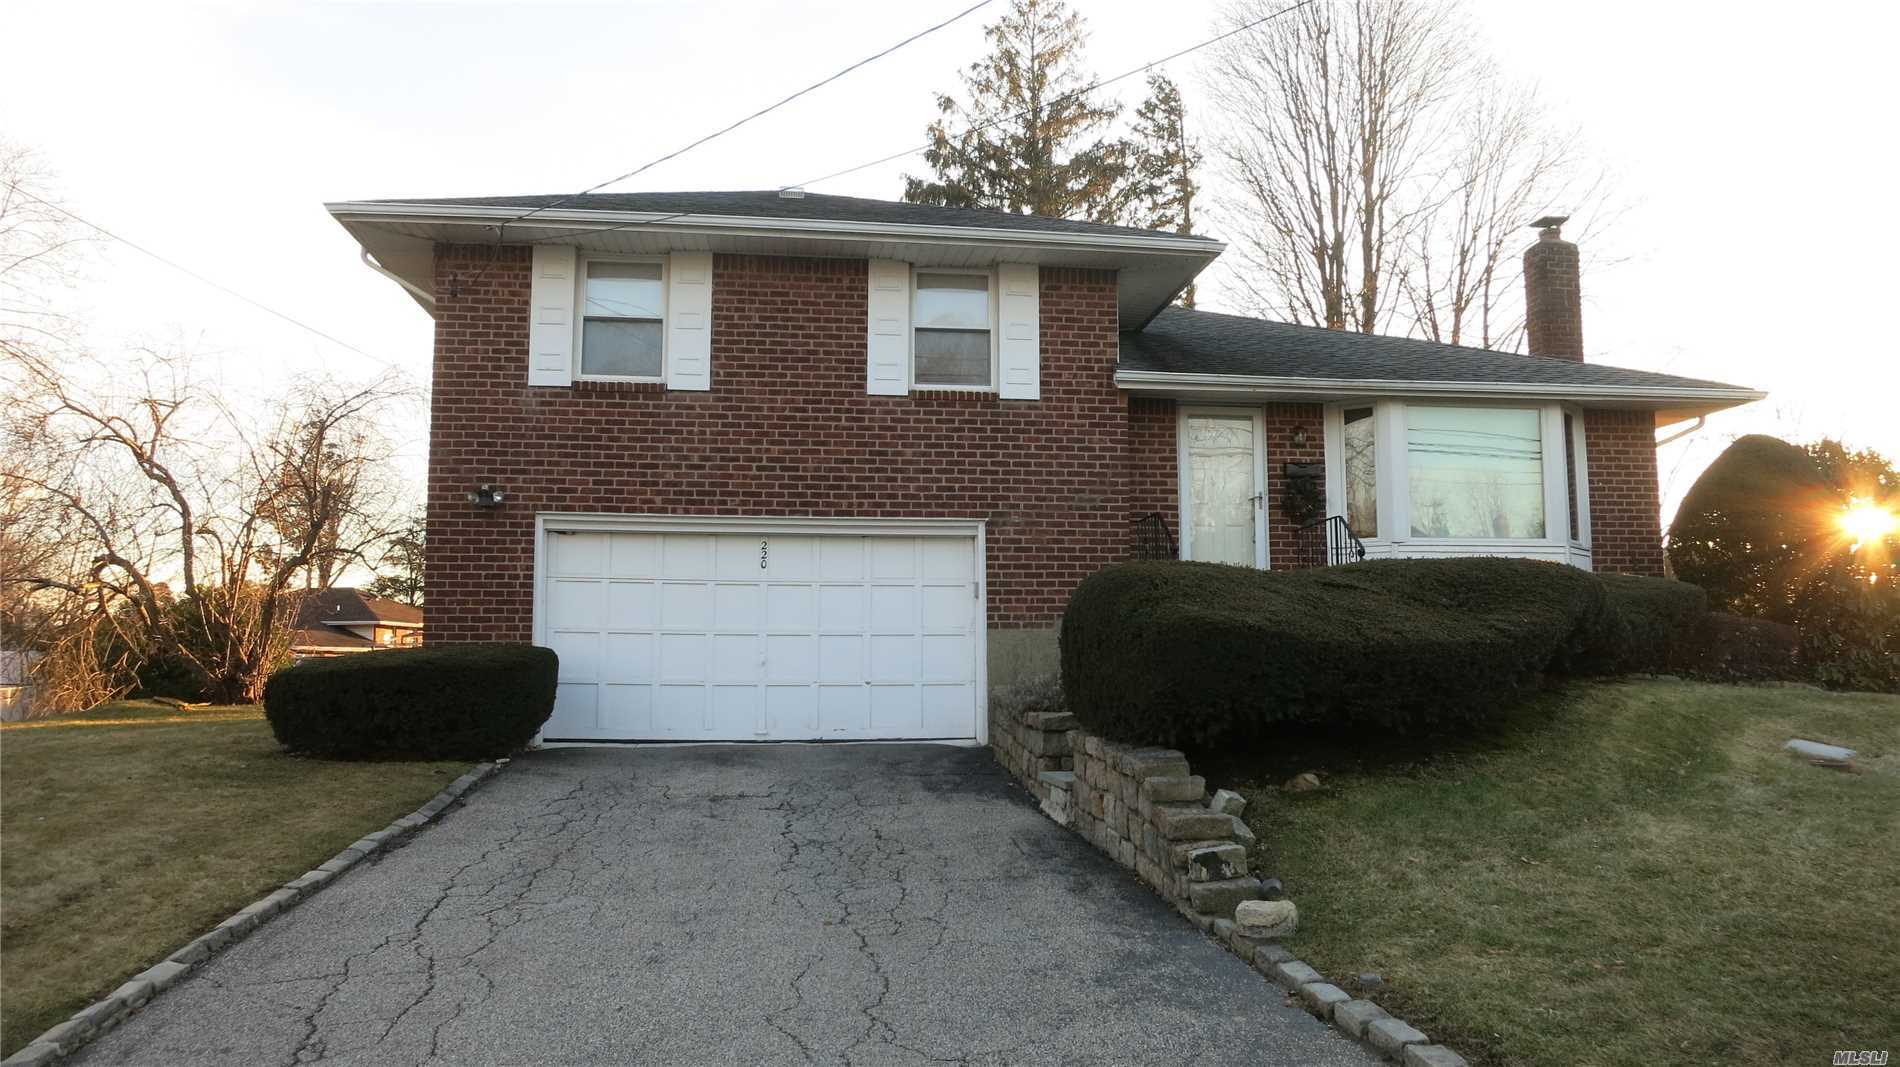 Beautiful 3Br X 1.5 Bath Split In Mint Condition. Sun-Filled Lr/Dr With Bay Windows, Updated Eik W/Granite Counter And Maple Cabinets. Spacious Full Finished Basement With Tile Floor, Great For Playroom/Office. Attached Garage, Gas Heat/Cooking. Tenant Must Apply Thru National Tenant Network And Pay A $35 Application Fee Per Applicant.